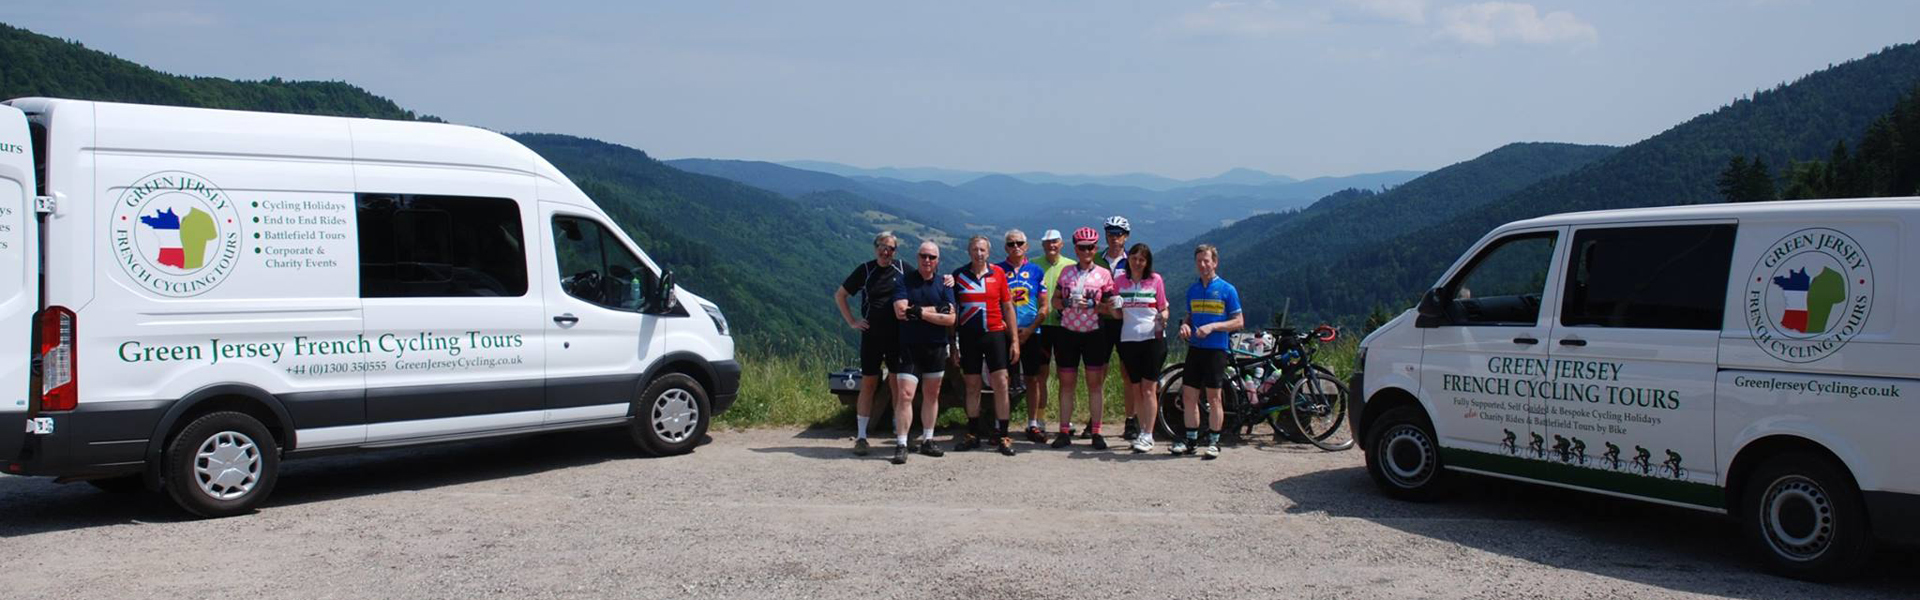 Travel Information | Green Jersey French Cycling Tours